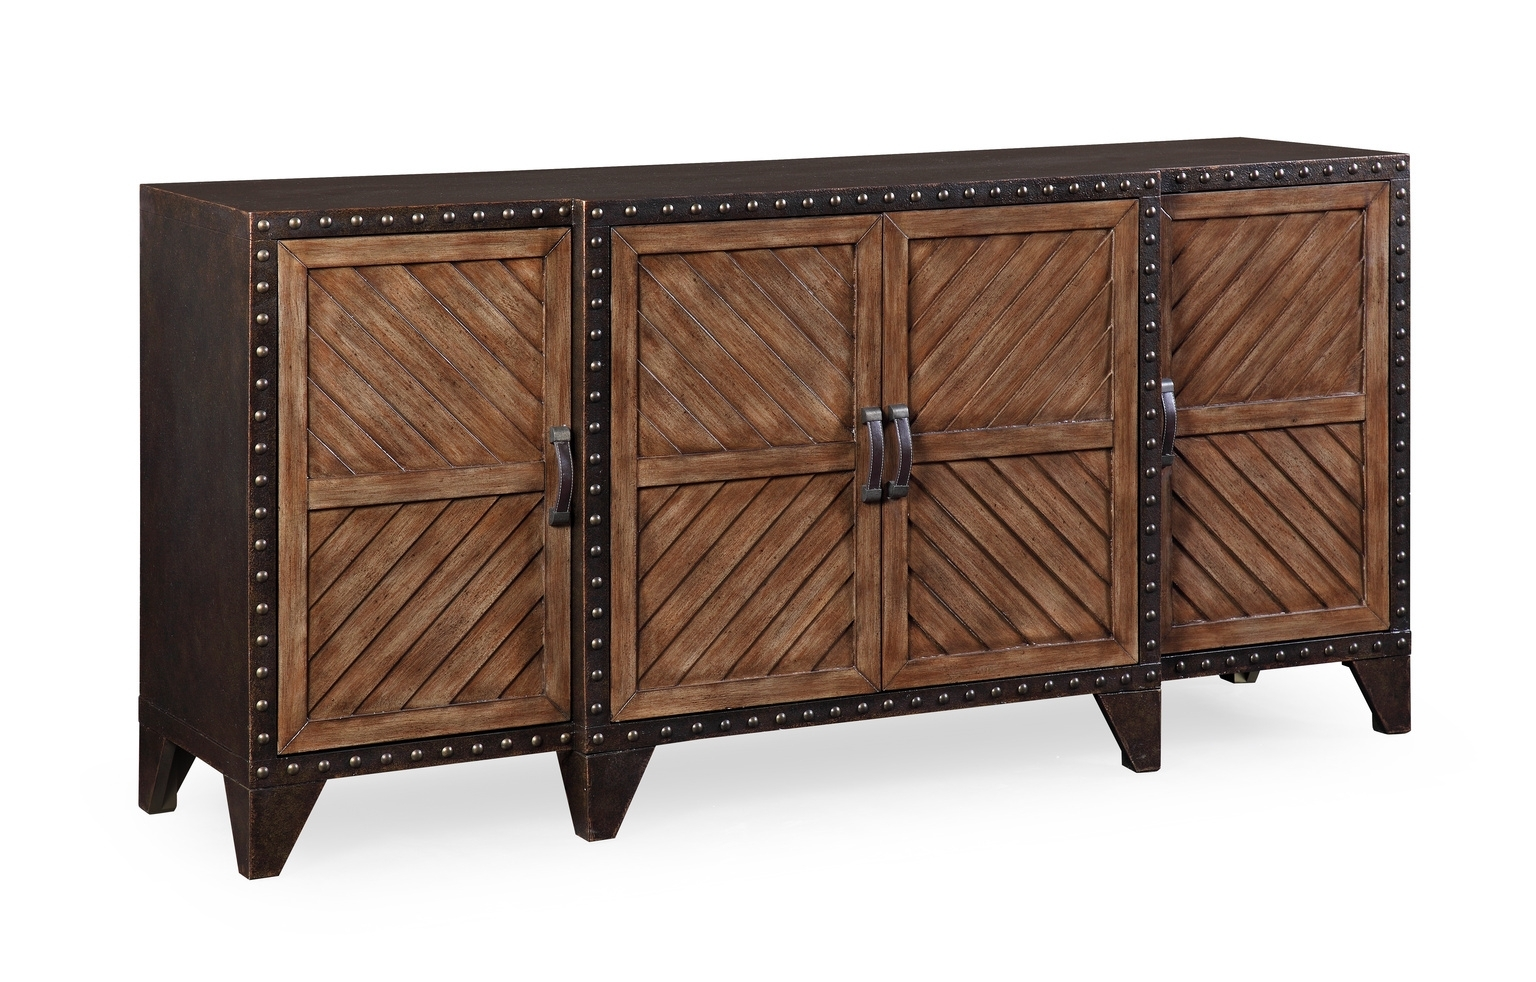 Sideboards, Cabinets, Shelving intended for Black Oak Wood and Wrought Iron Sideboards (Image 24 of 30)